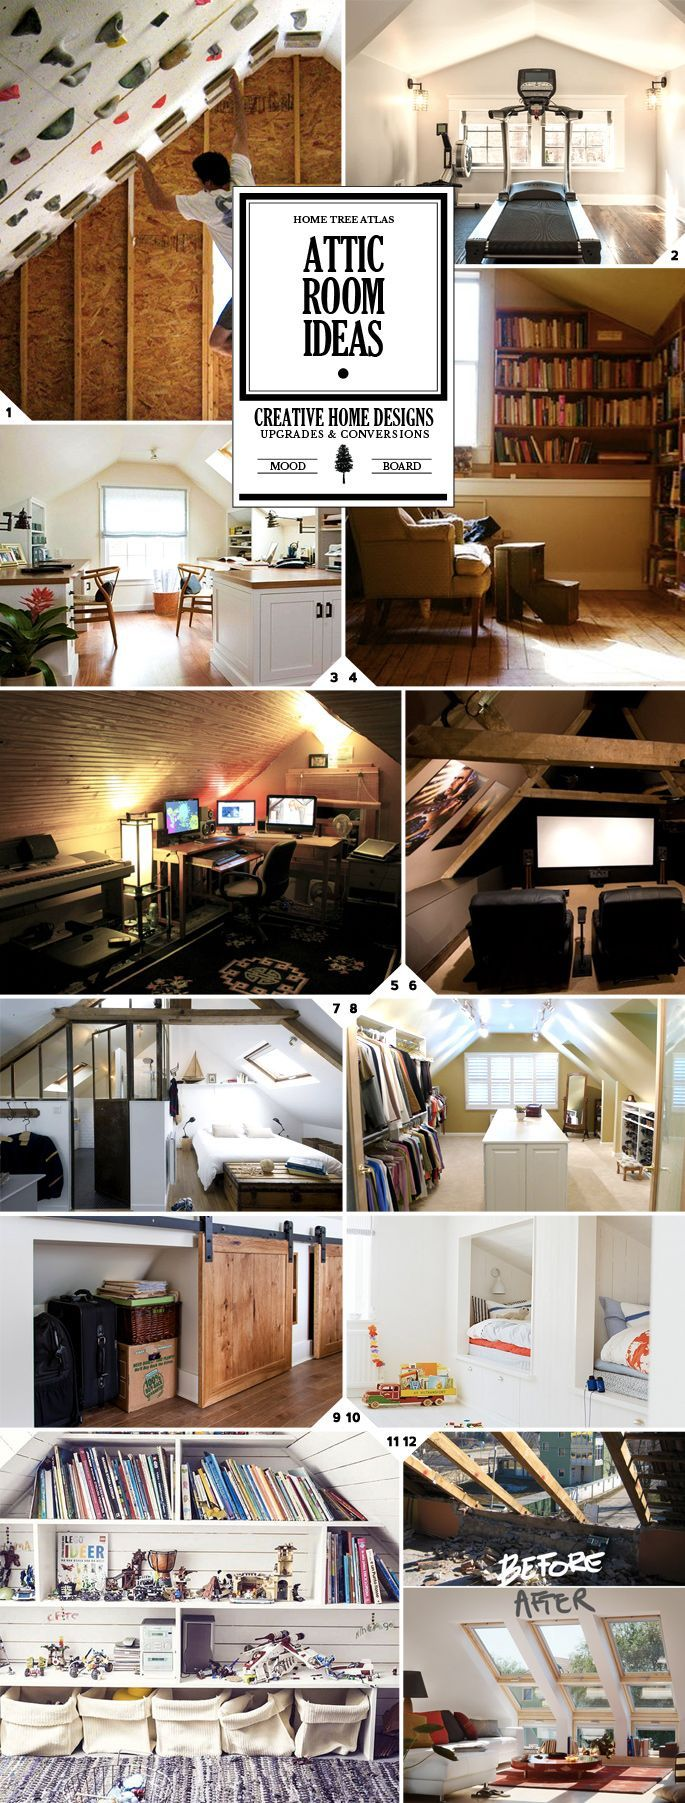 Attic Rooms 11 Different Conversion Ideas Home Tree Atlas Attic Renovation Attic Rooms Attic Loft